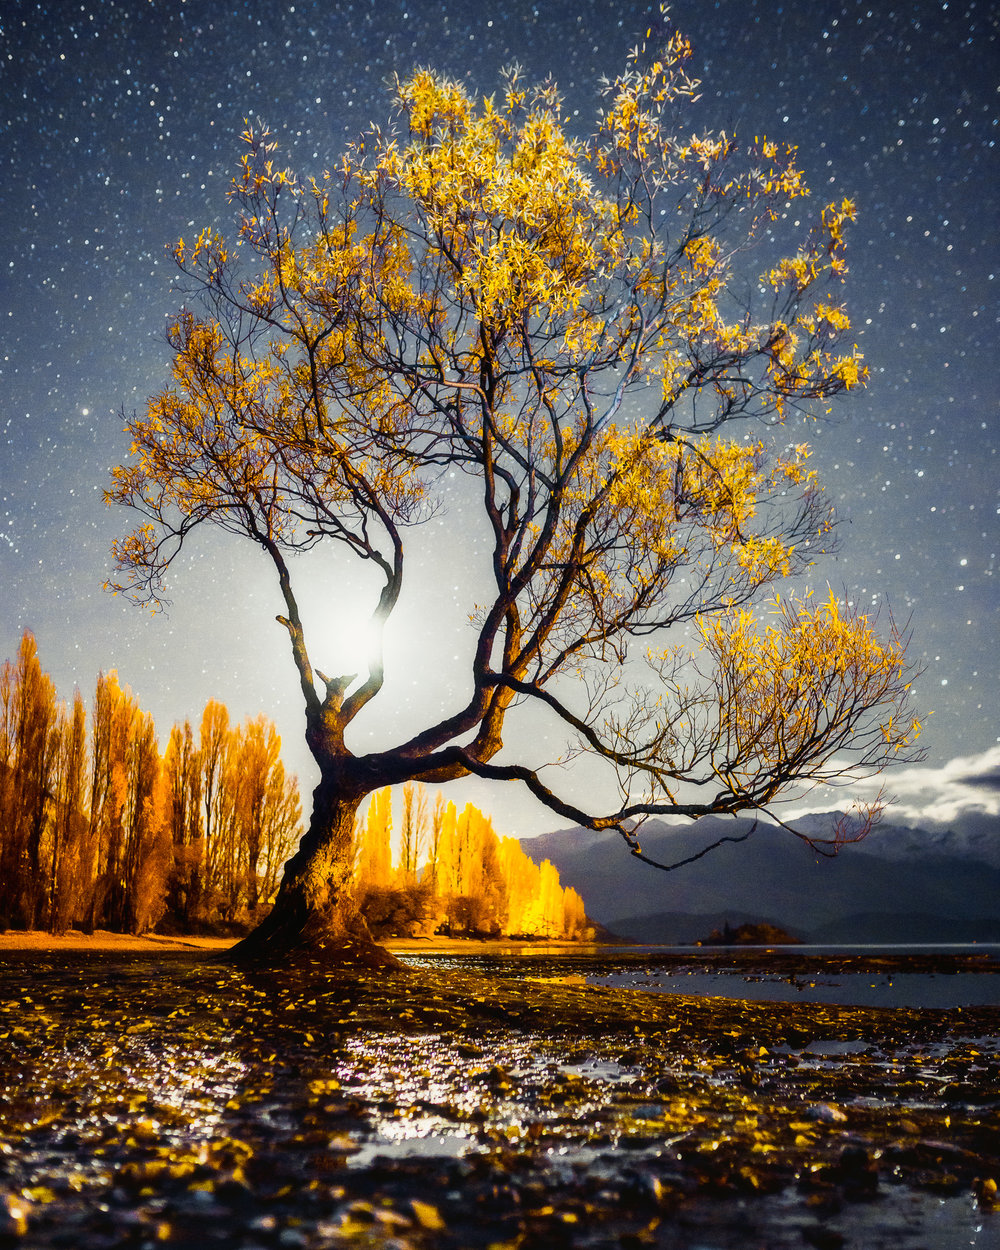 WANAKA TREE UNDER MOON LIGHT